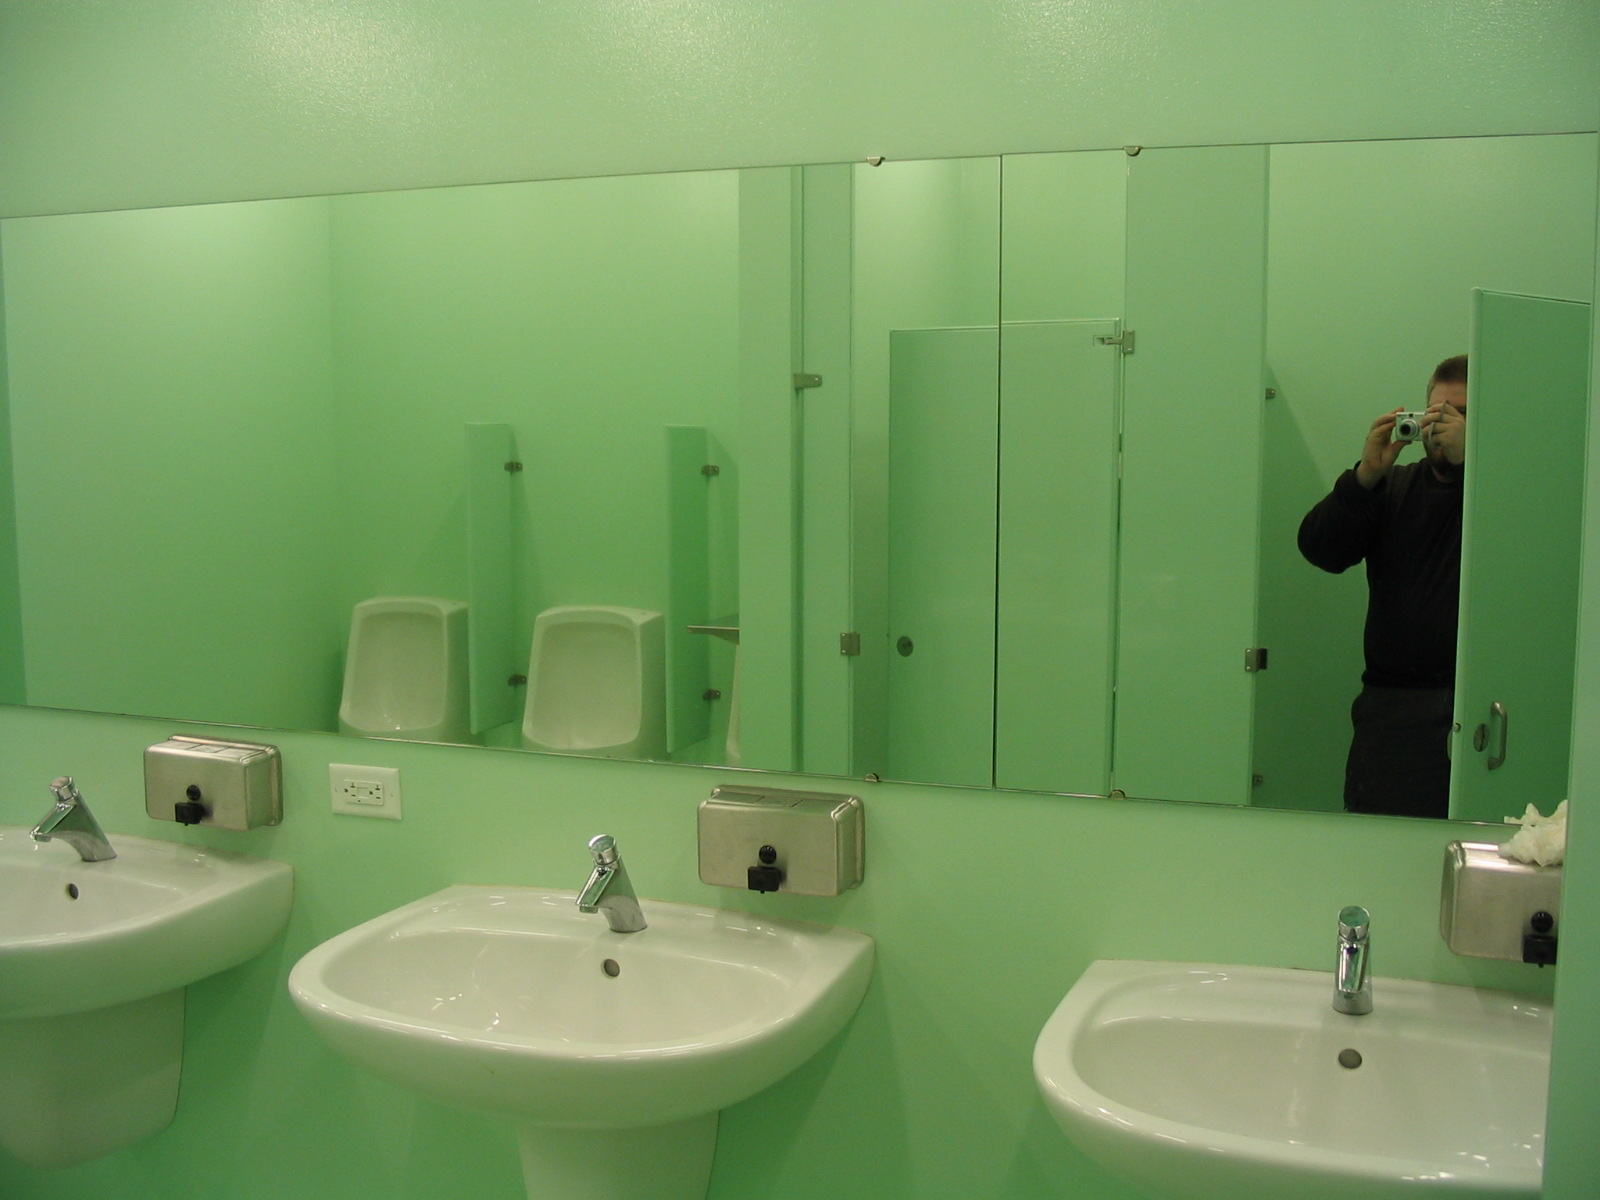 Club installs two way mirrors in women 39 s bathroom to for Bathroom photos of ladies